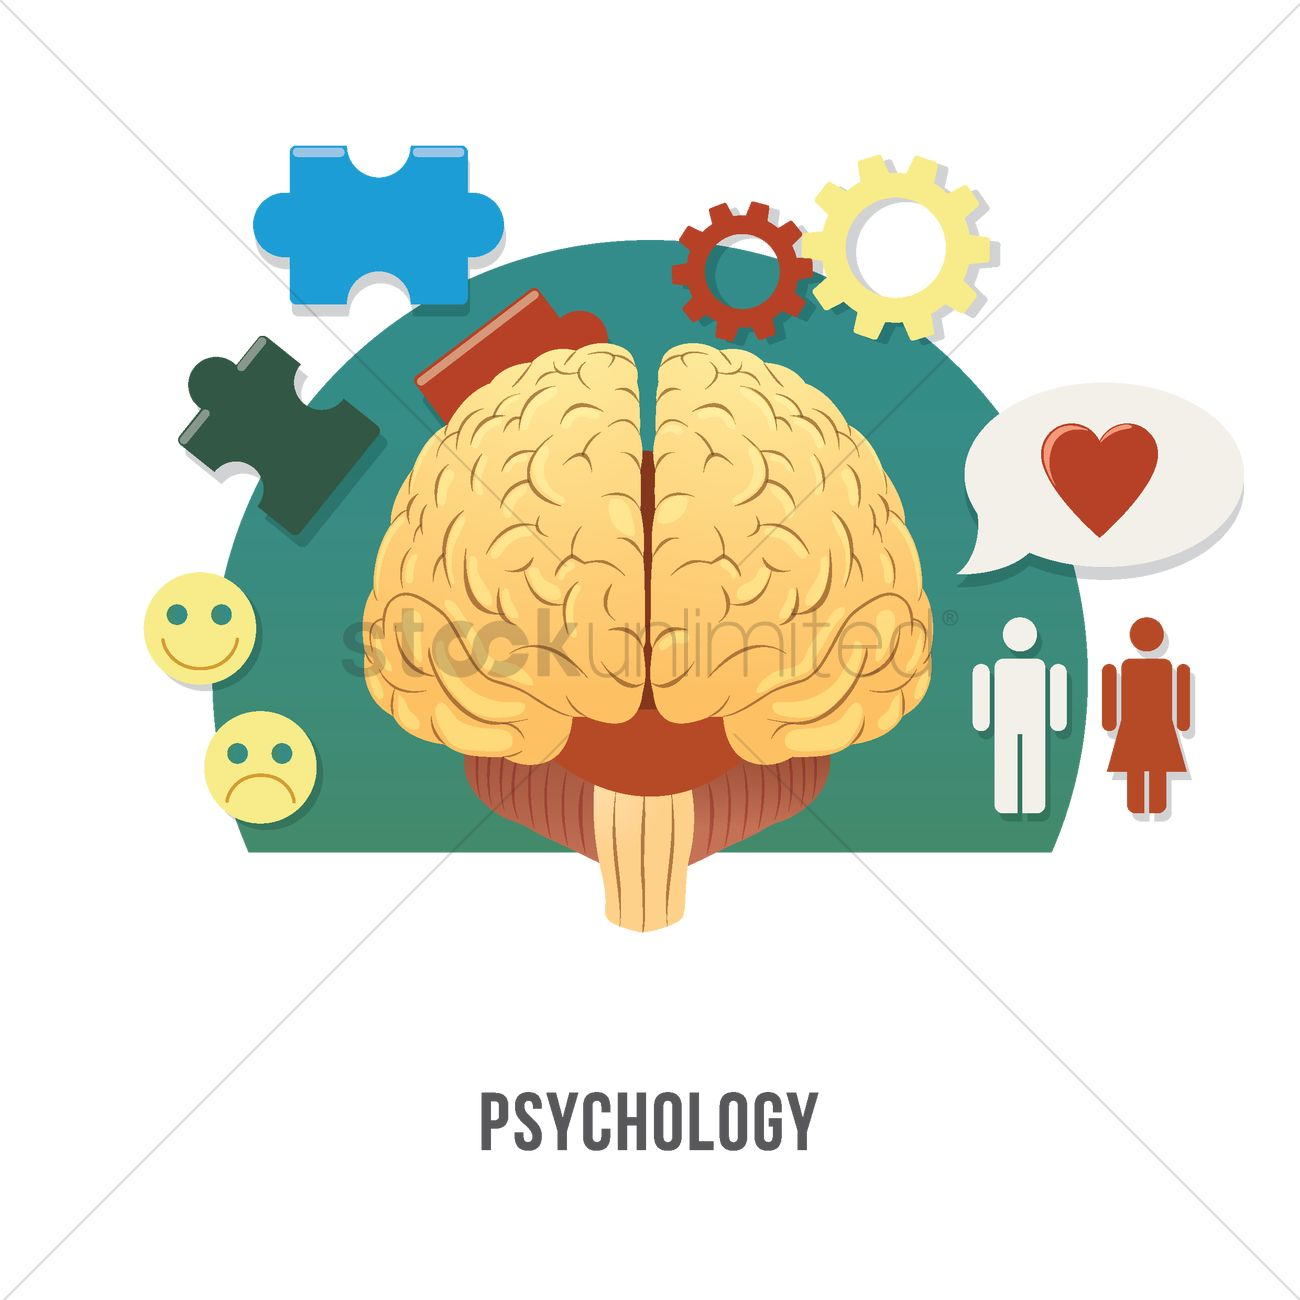 Psychology Concept Vector Image 2003909 Stockunlimited